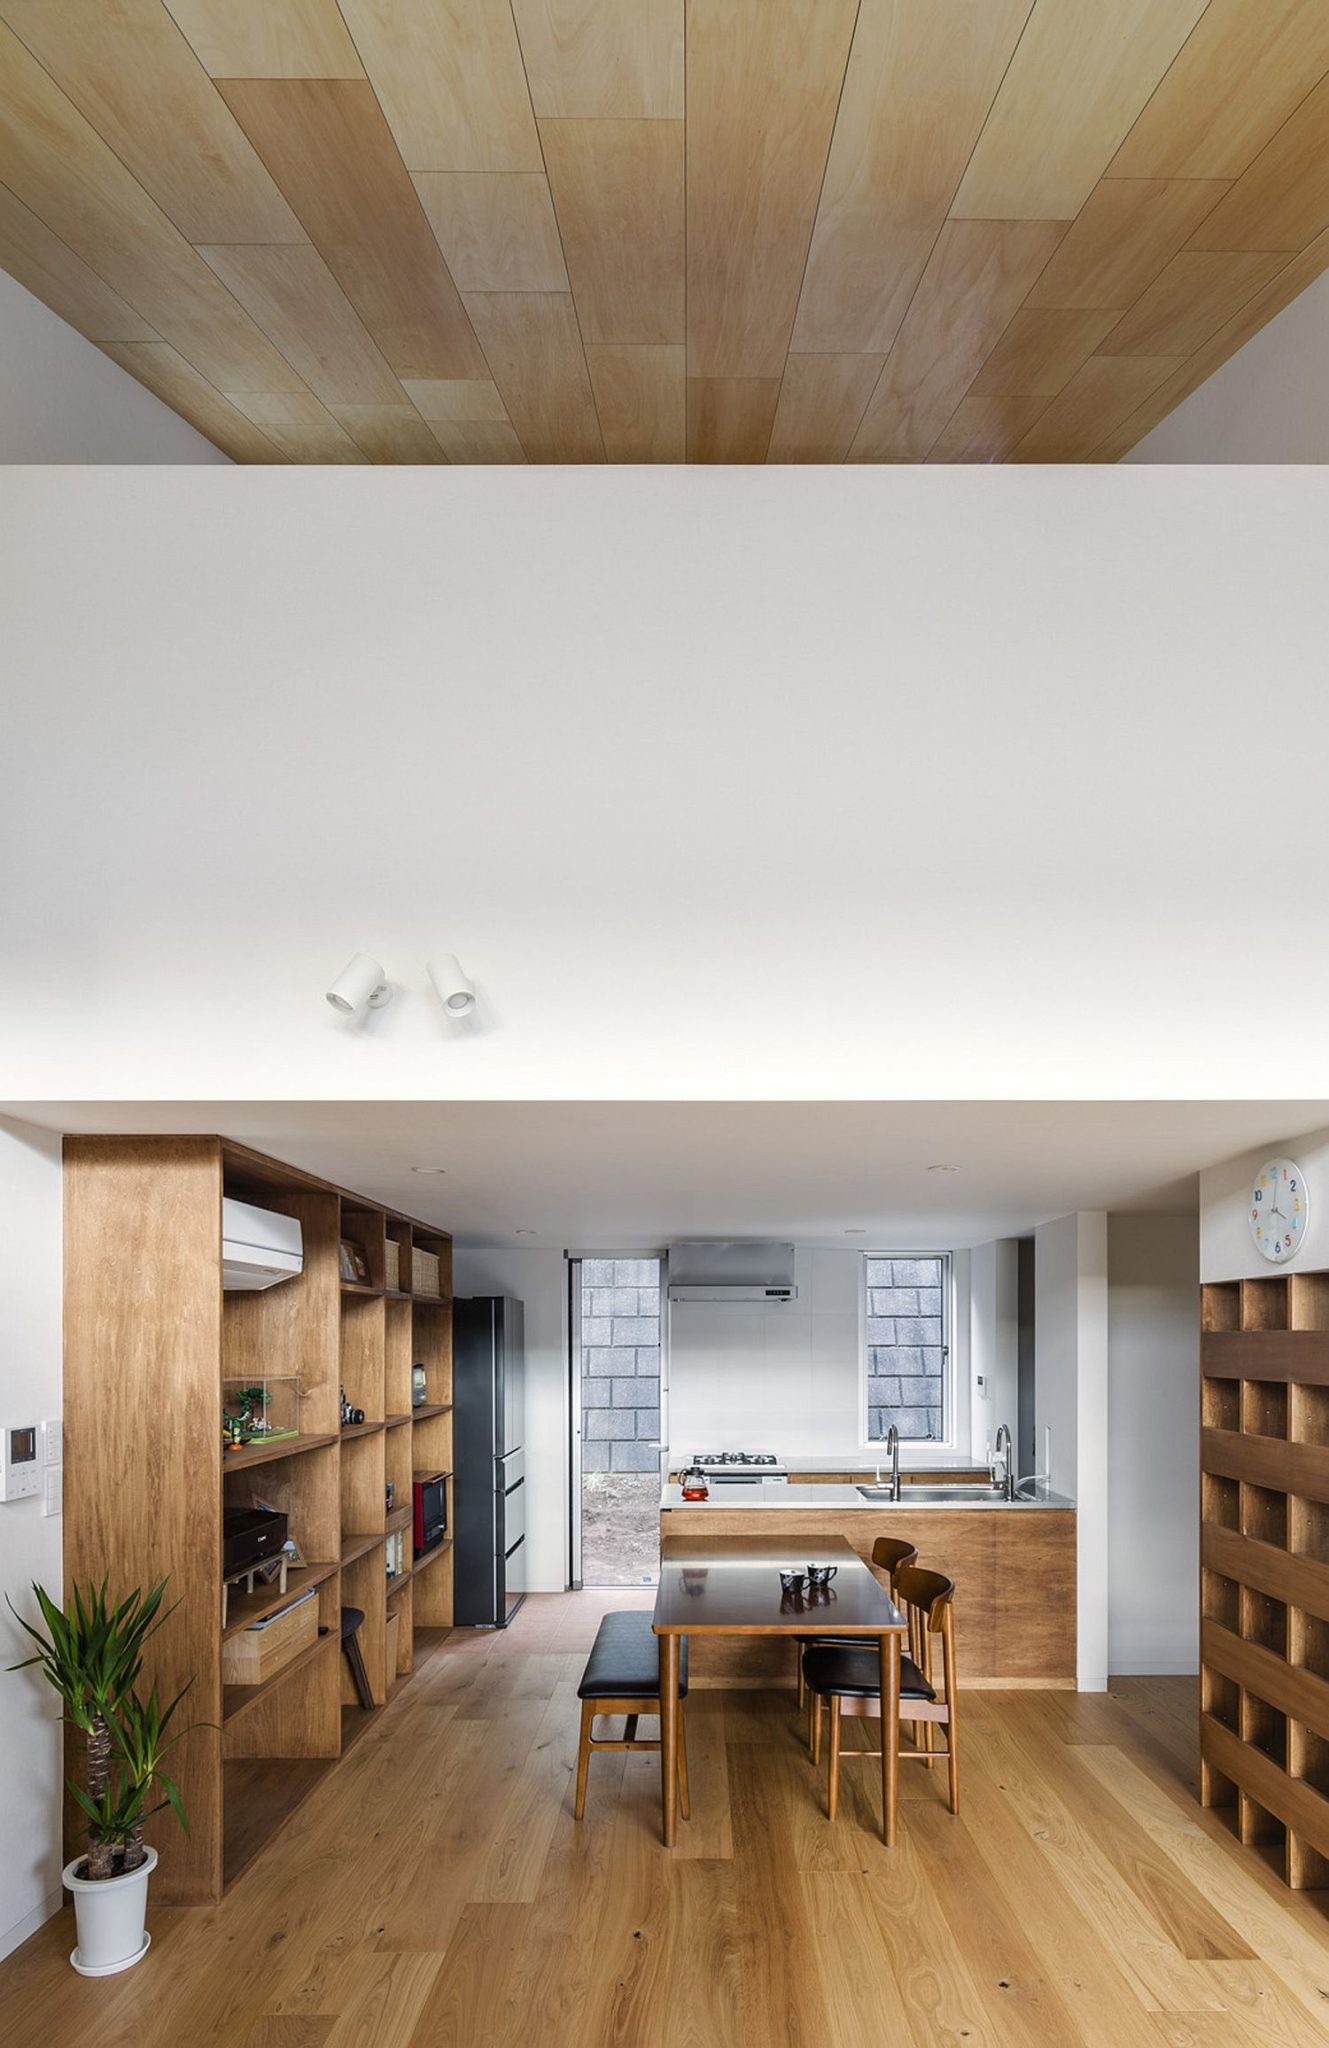 Slanted ceiling and double-height living room of the Japanese home